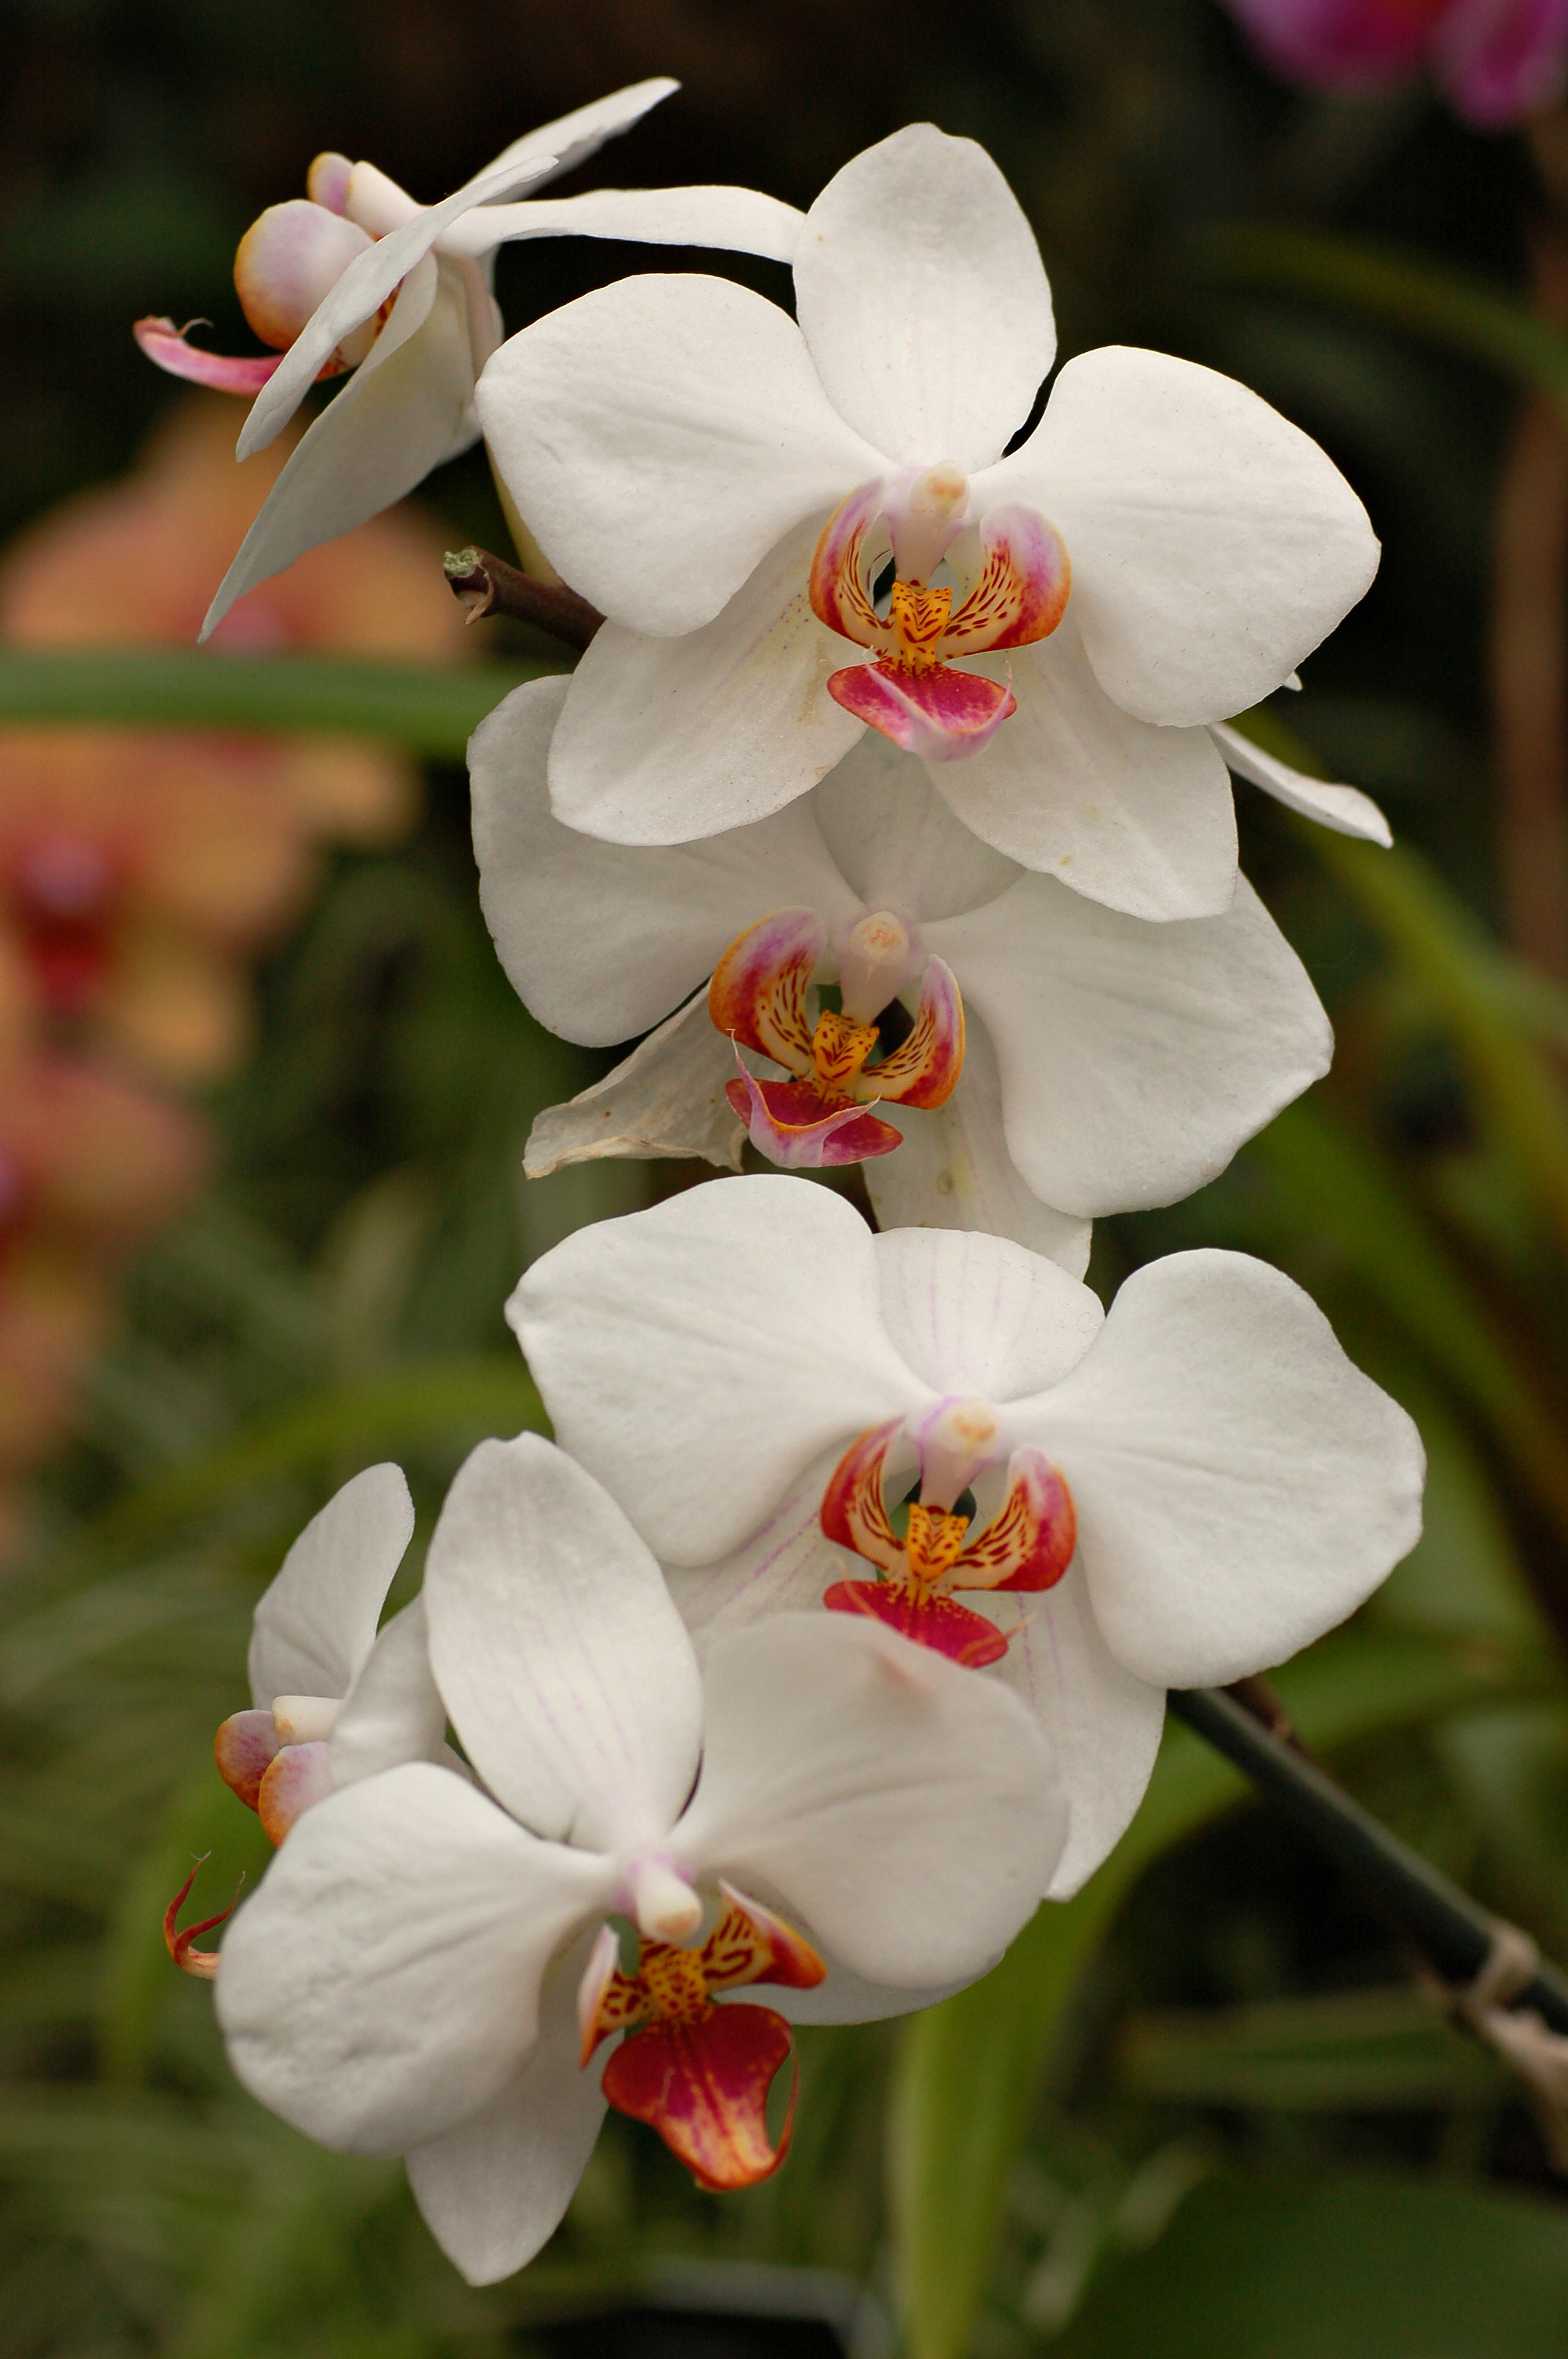 Fileorchid Cultivar White Flowers 2000pxg Wikimedia Commons